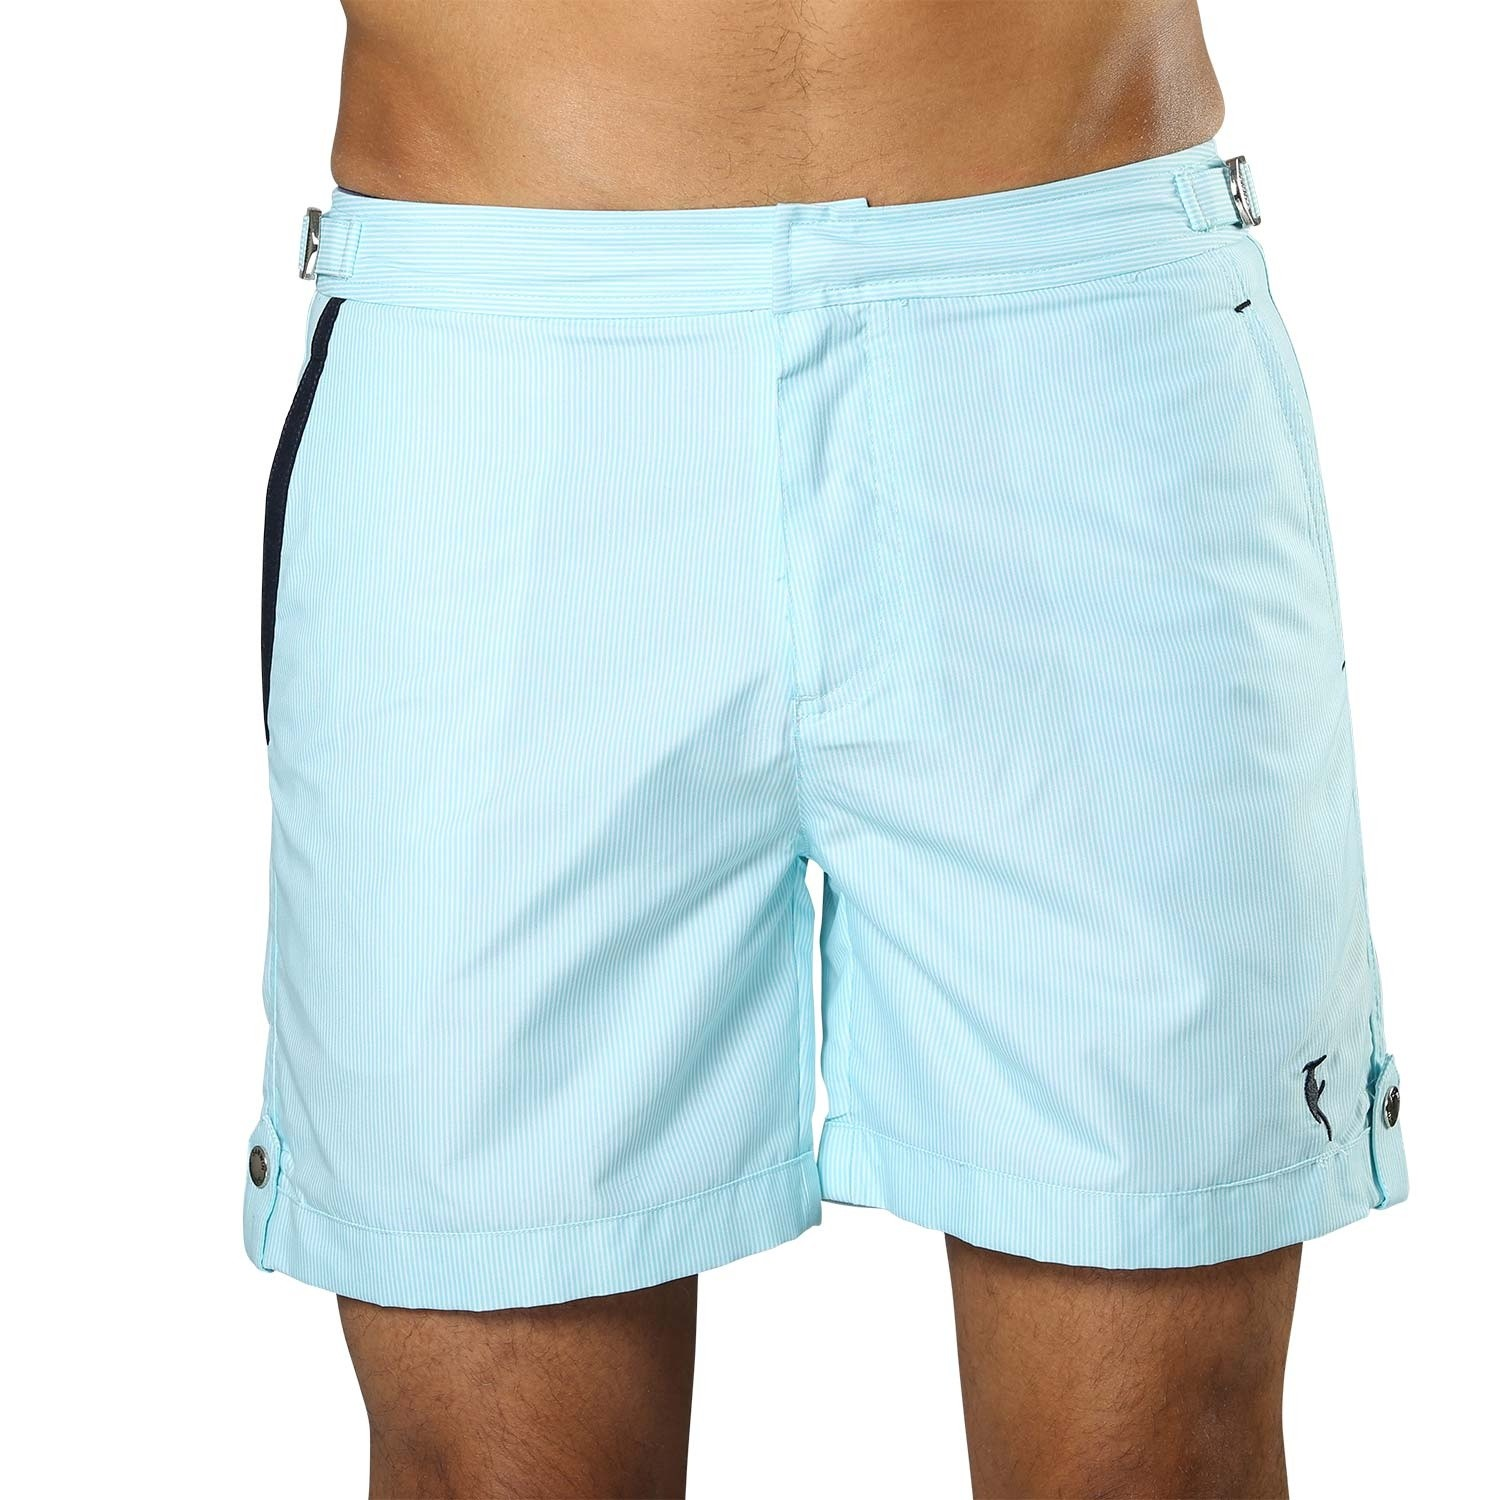 Zdjęcie Swim Short Tampa Stripes Maya Blue Sanwin Beachwear